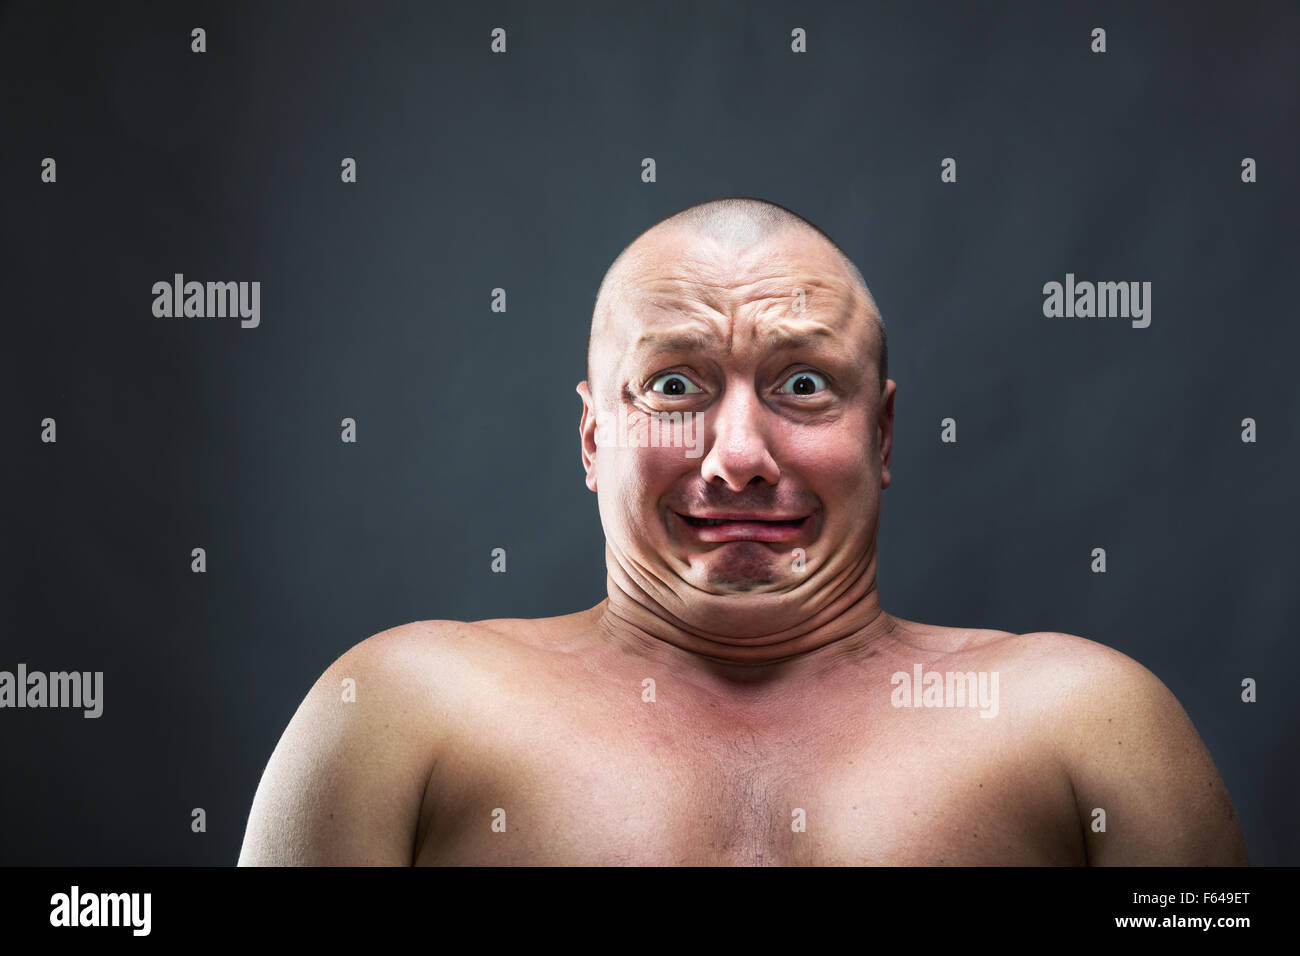 Portrait of bald man with scared face - Stock Image